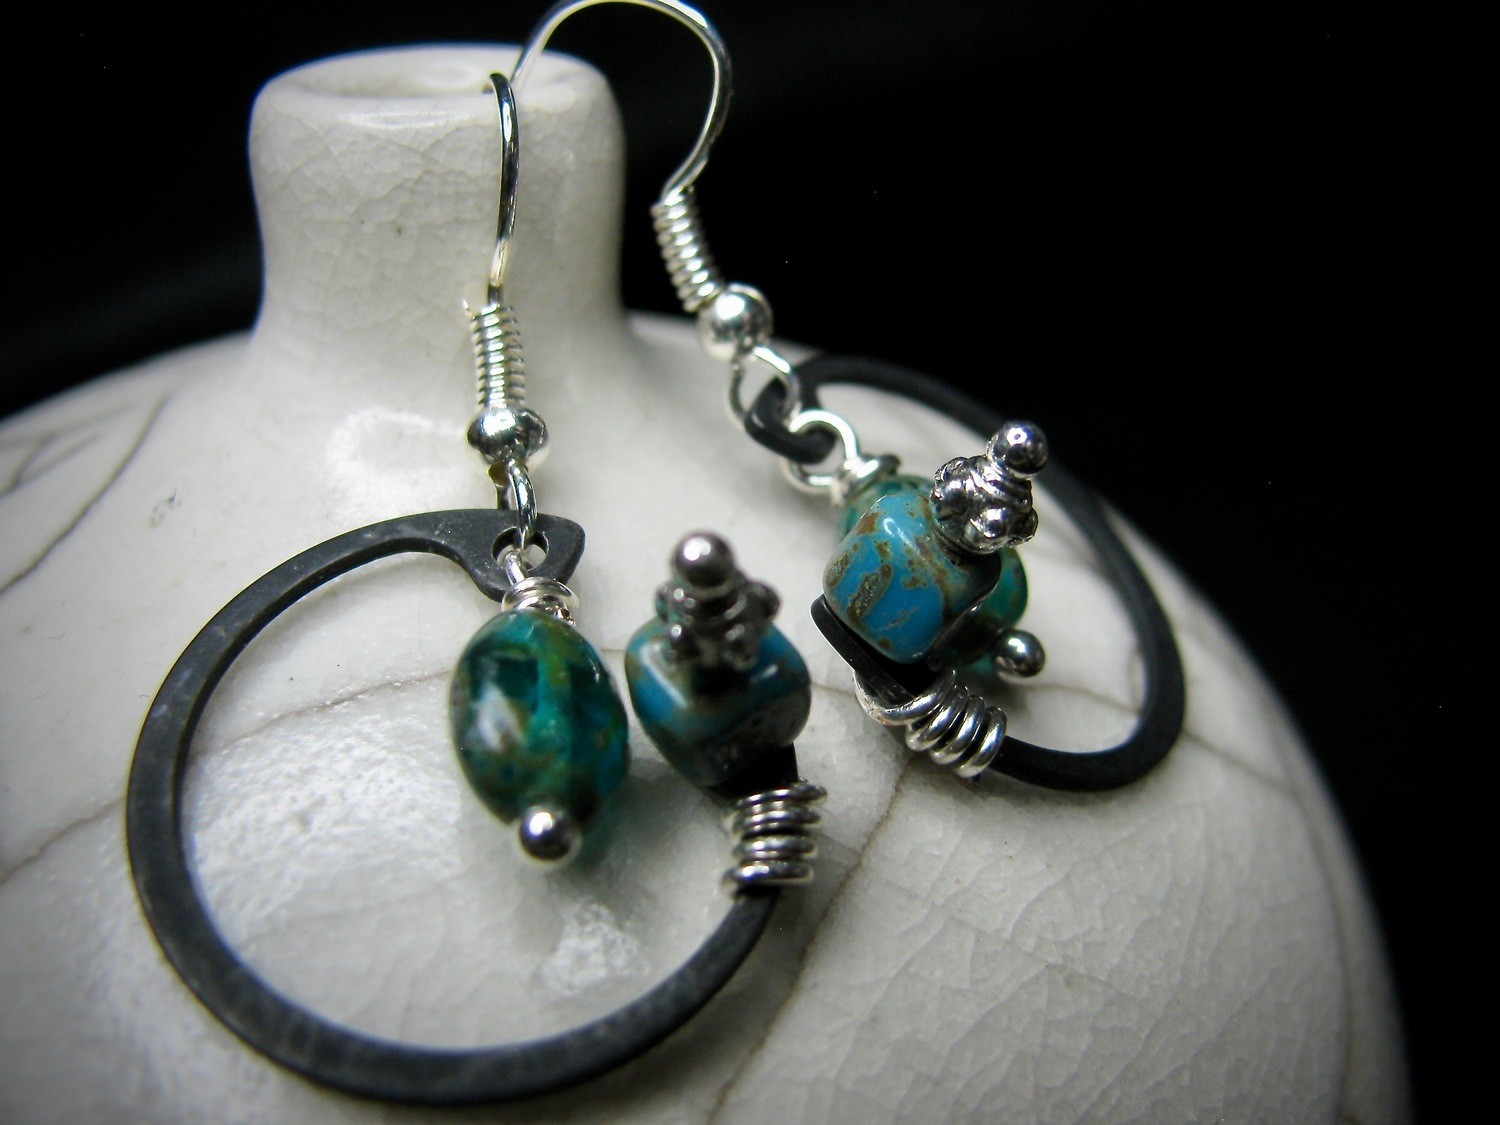 C Clamp Earrings with Turquoise Stone